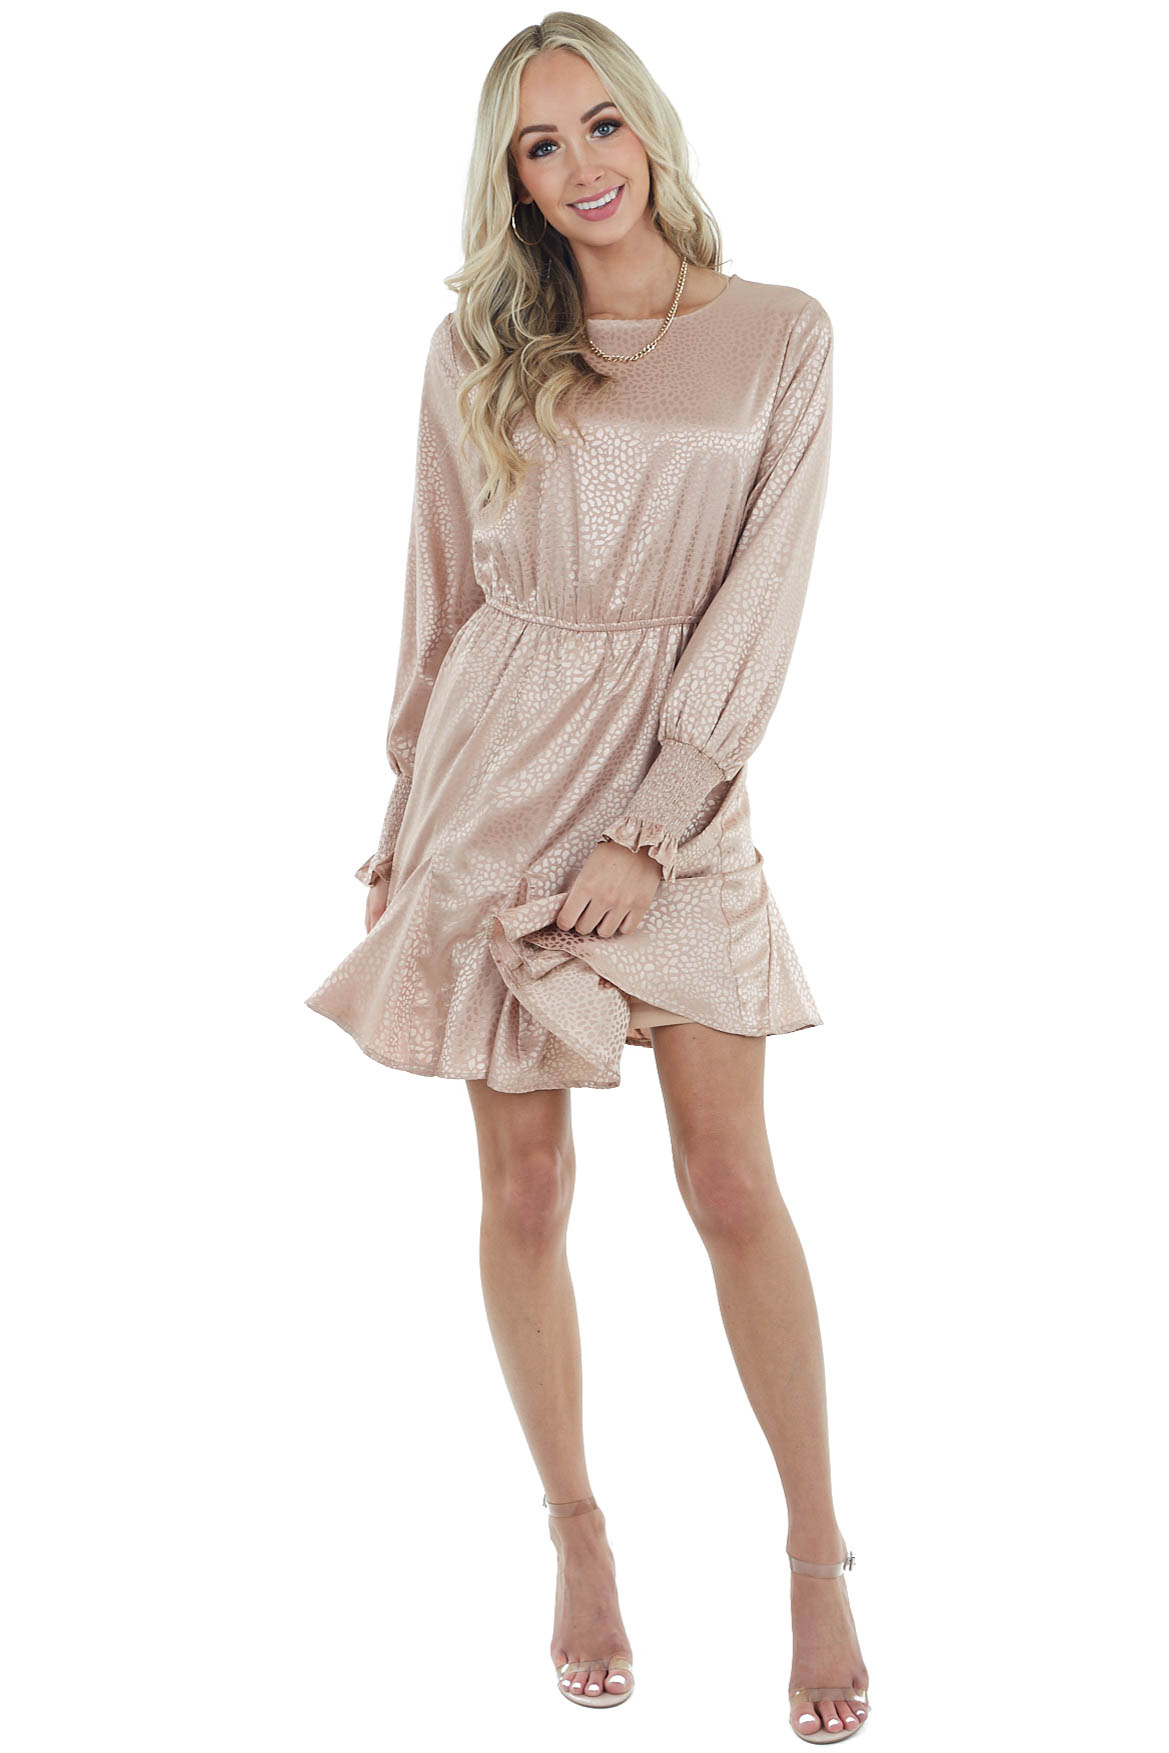 Dusty Blush Cheetah Print Long Sleeve Mini Dress with Pleats